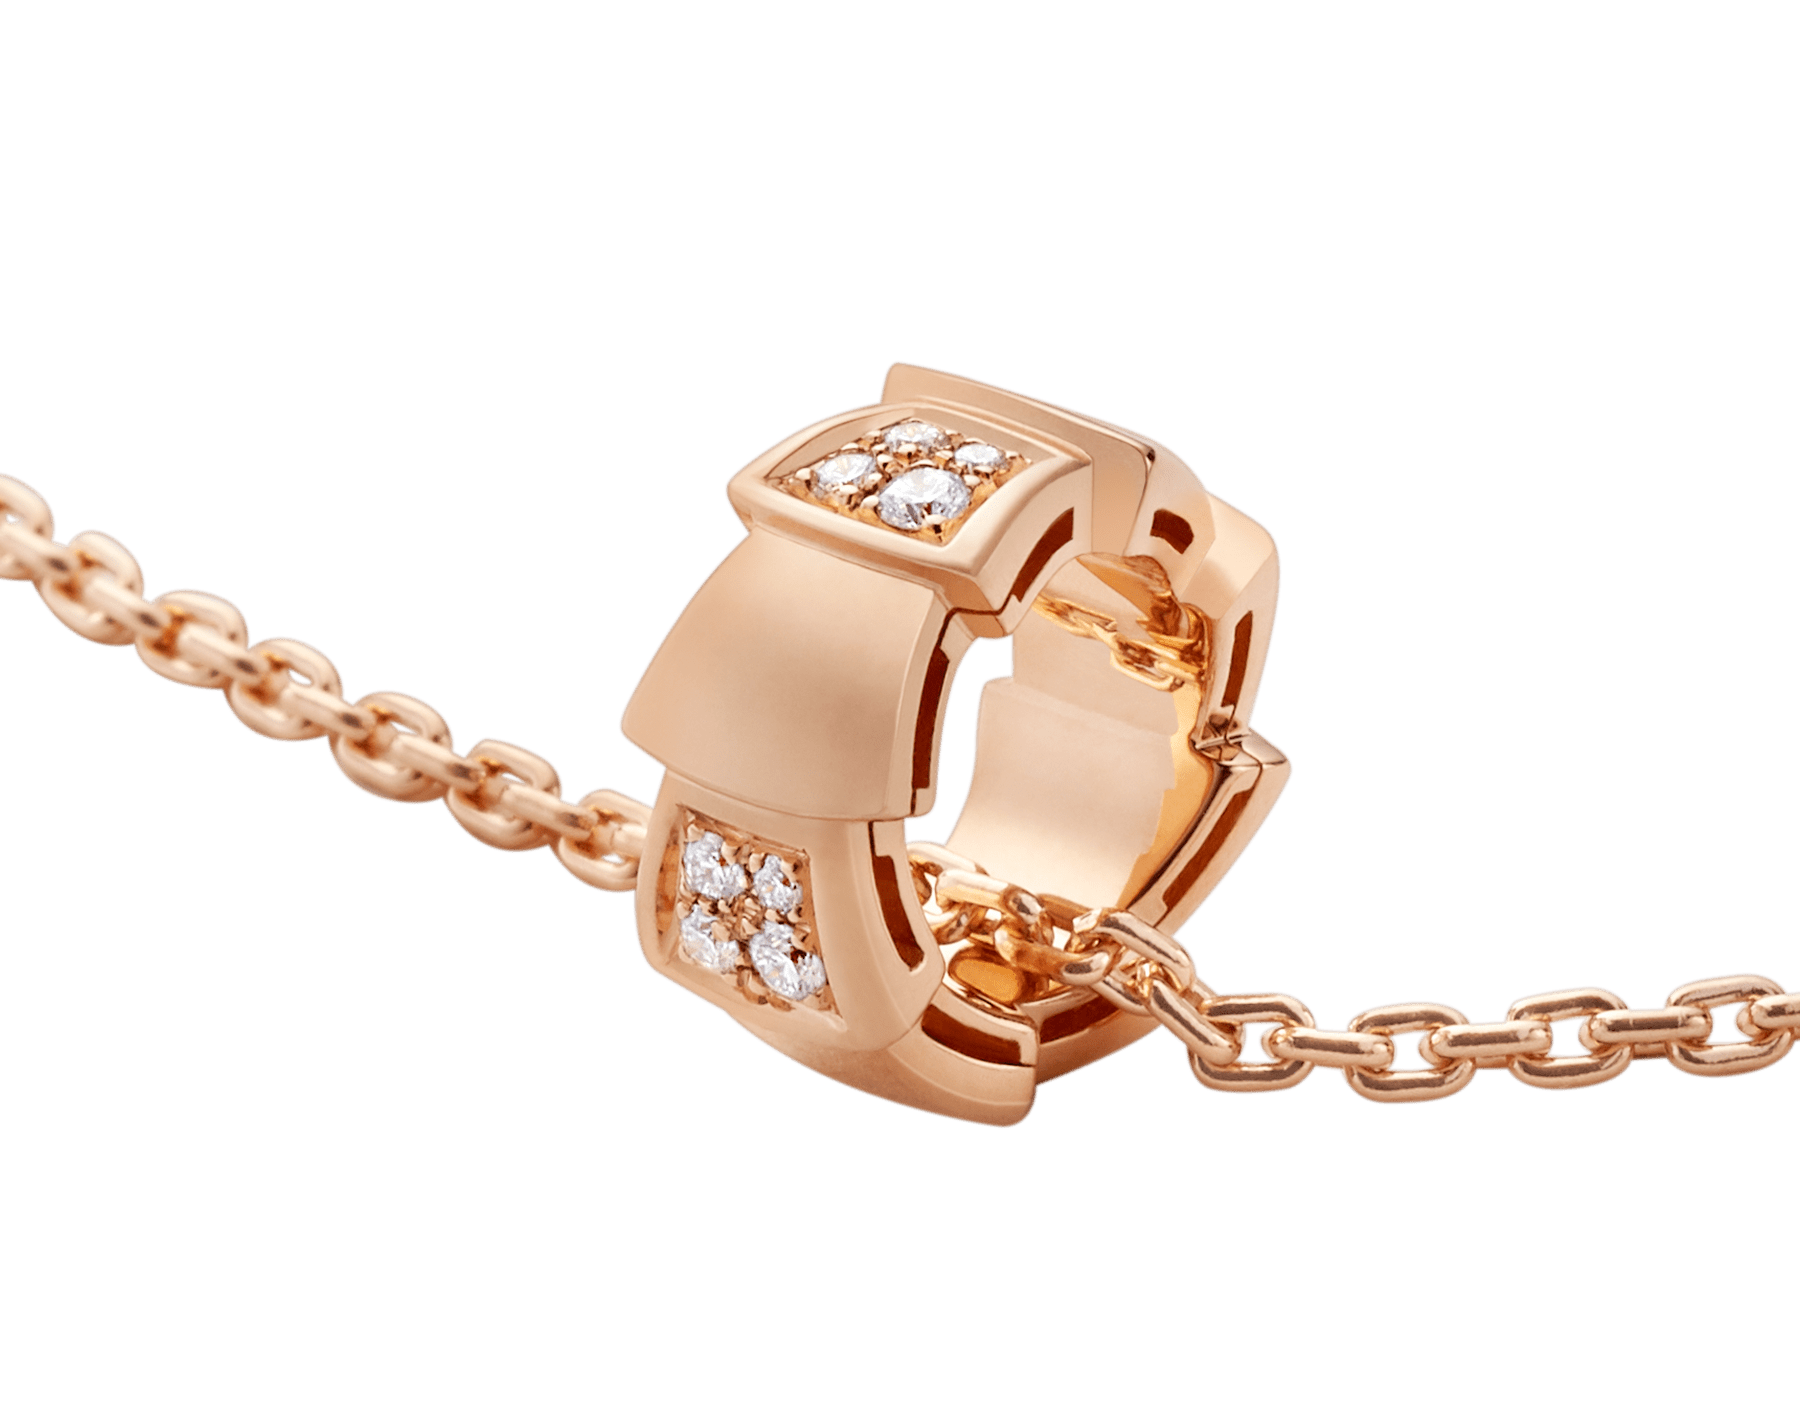 Serpenti Viper necklace with 18 kt rose gold chain and 18 kt rose gold pendant set with demi pavé diamonds. (0.21 ct) 355254 image 3